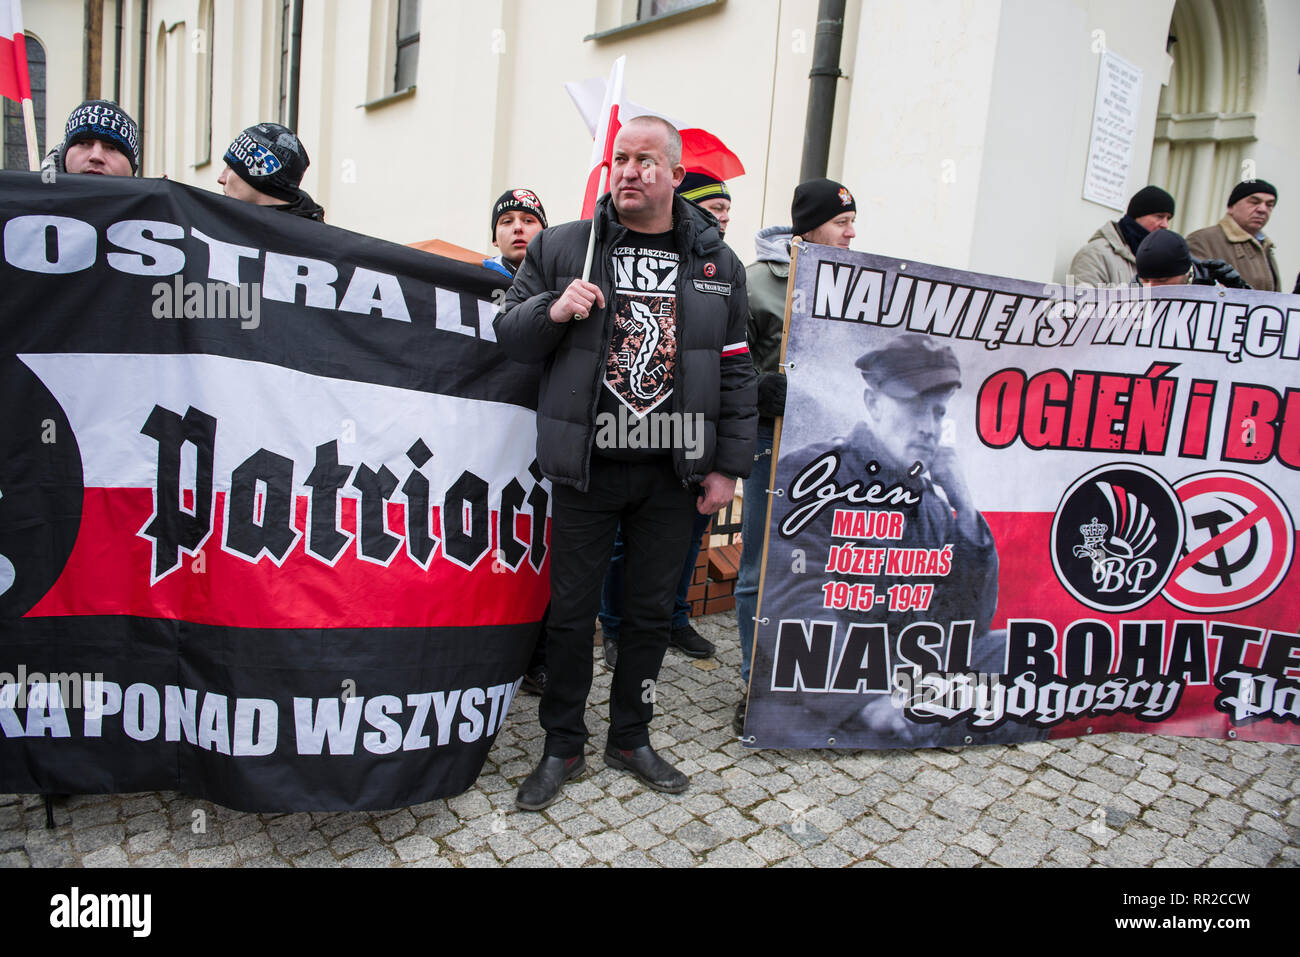 """A man see standing next to banners during commemorative. Polish nationalists organized a commemorative march of the """"Cursed Soldiers"""" in the city of Hajnowka next to the Belarusian border. The Cursed Soldiers also known as the Doomed Soldiers were anti-communist resistant fighters after WWII, however they were also famous of committing crimes against civilians, mostly ethnic Belarusians. - Stock Image"""